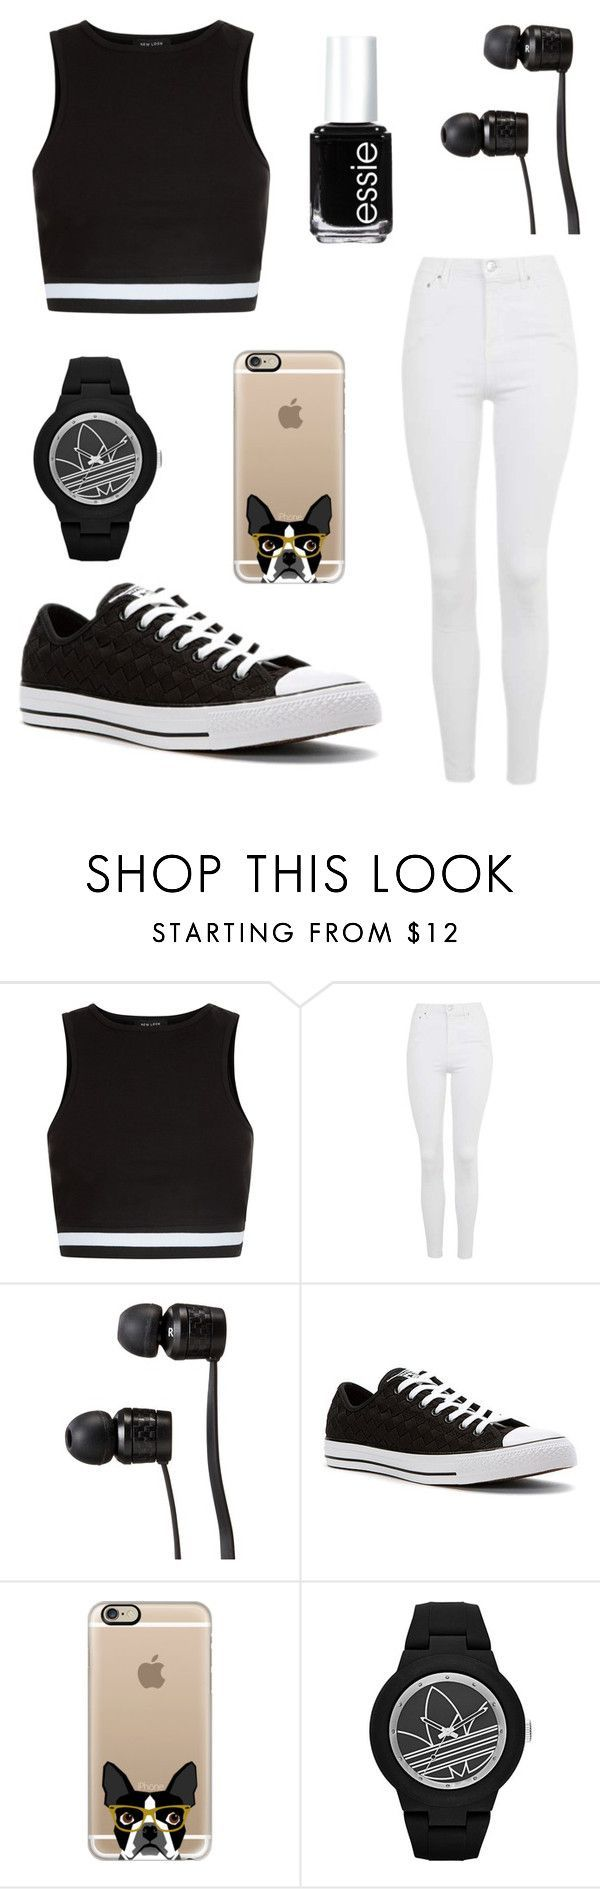 """""""Black and white"""" by be-robinson ❤ liked on Polyvore featuring New Look, Topshop, Vans, Converse, Casetify, adidas and Essie"""